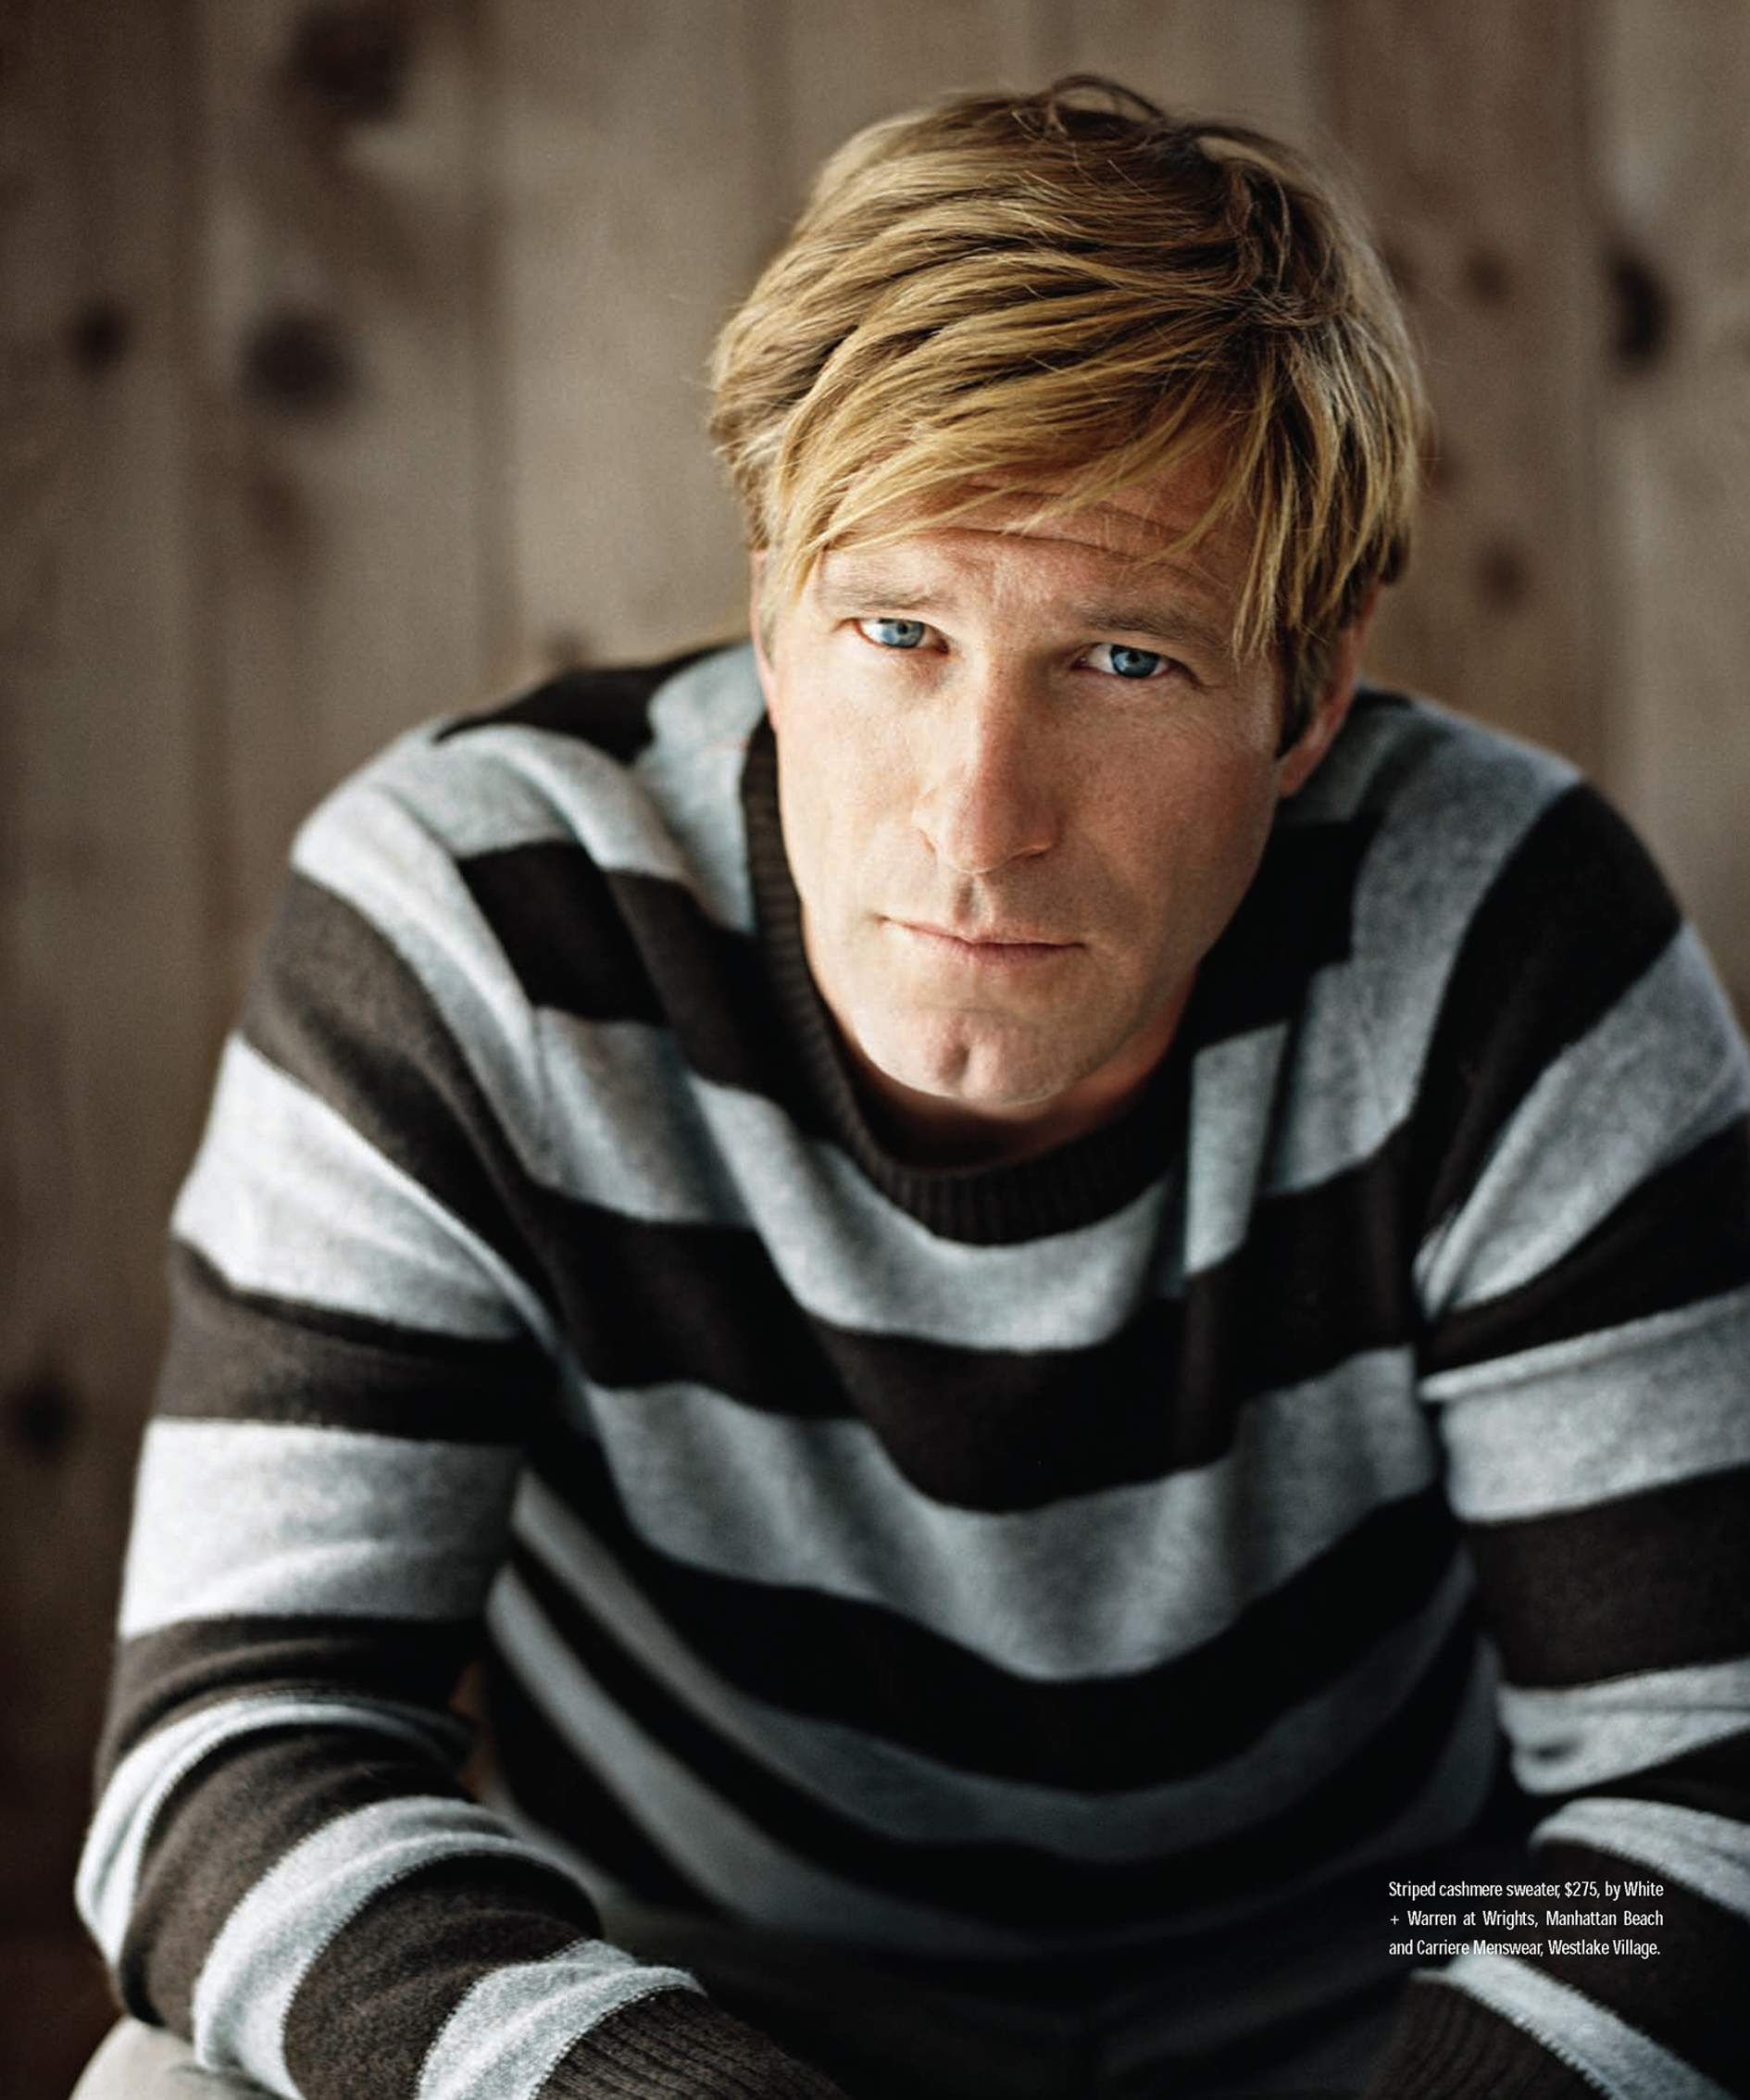 aaron eckhart wicker manaaron eckhart height, aaron eckhart фильмография, aaron eckhart 2016, aaron eckhart gif, aaron eckhart movies, aaron eckhart filme, aaron eckhart sinemalar, aaron eckhart youtube, aaron eckhart wiki, aaron eckhart and jennifer aniston, aaron eckhart nationality, aaron eckhart sully, aaron eckhart boyfriend, aaron eckhart photography, aaron eckhart best movies, aaron eckhart wicker man, aaron eckhart workout, aaron eckhart 2017, aaron eckhart filmography, aaron eckhart instagram